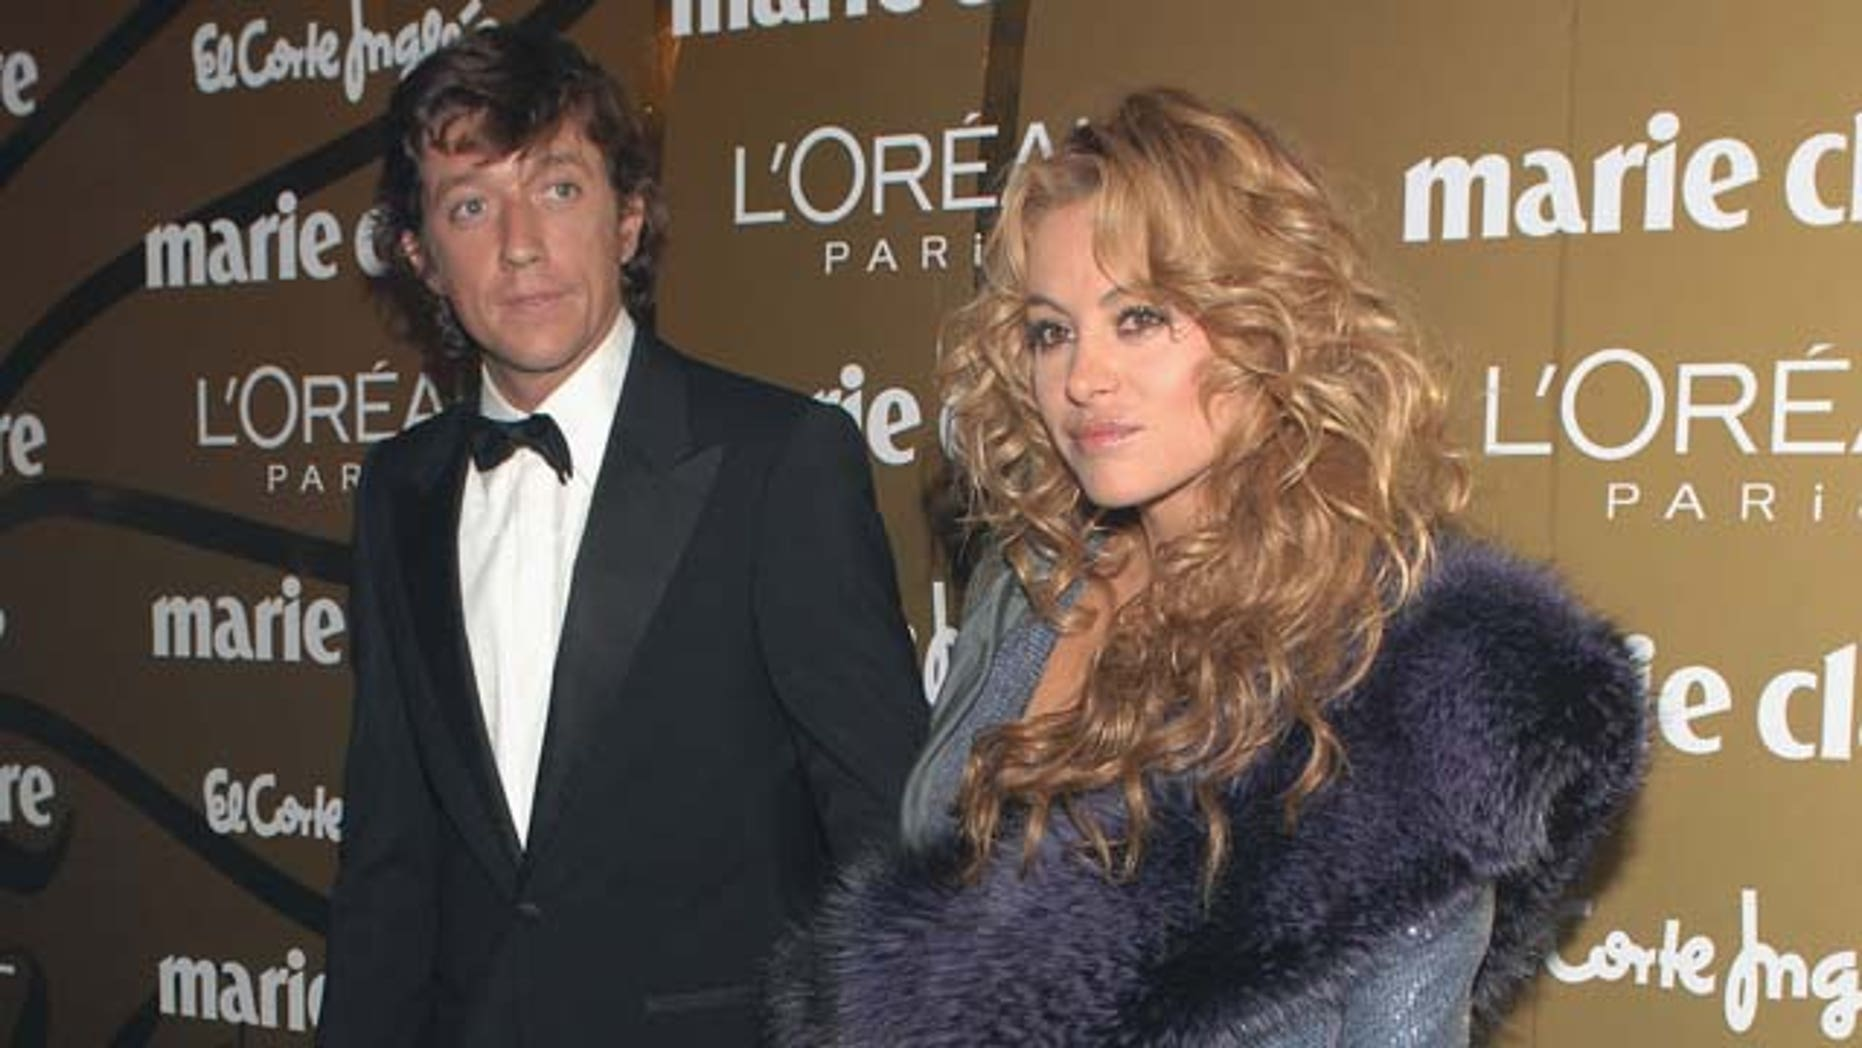 """MADRID, SPAIN - NOVEMBER 22:  Singer Paulina Rubio (R) and husband Nicolas """"Colate"""" Vallejo Najera attend the 5th Marie Claire Magazine Awards at the French Embassy November 22, 2007 in Madrid, Spain.  (Photo by Carlos Alvarez/Getty Images)"""